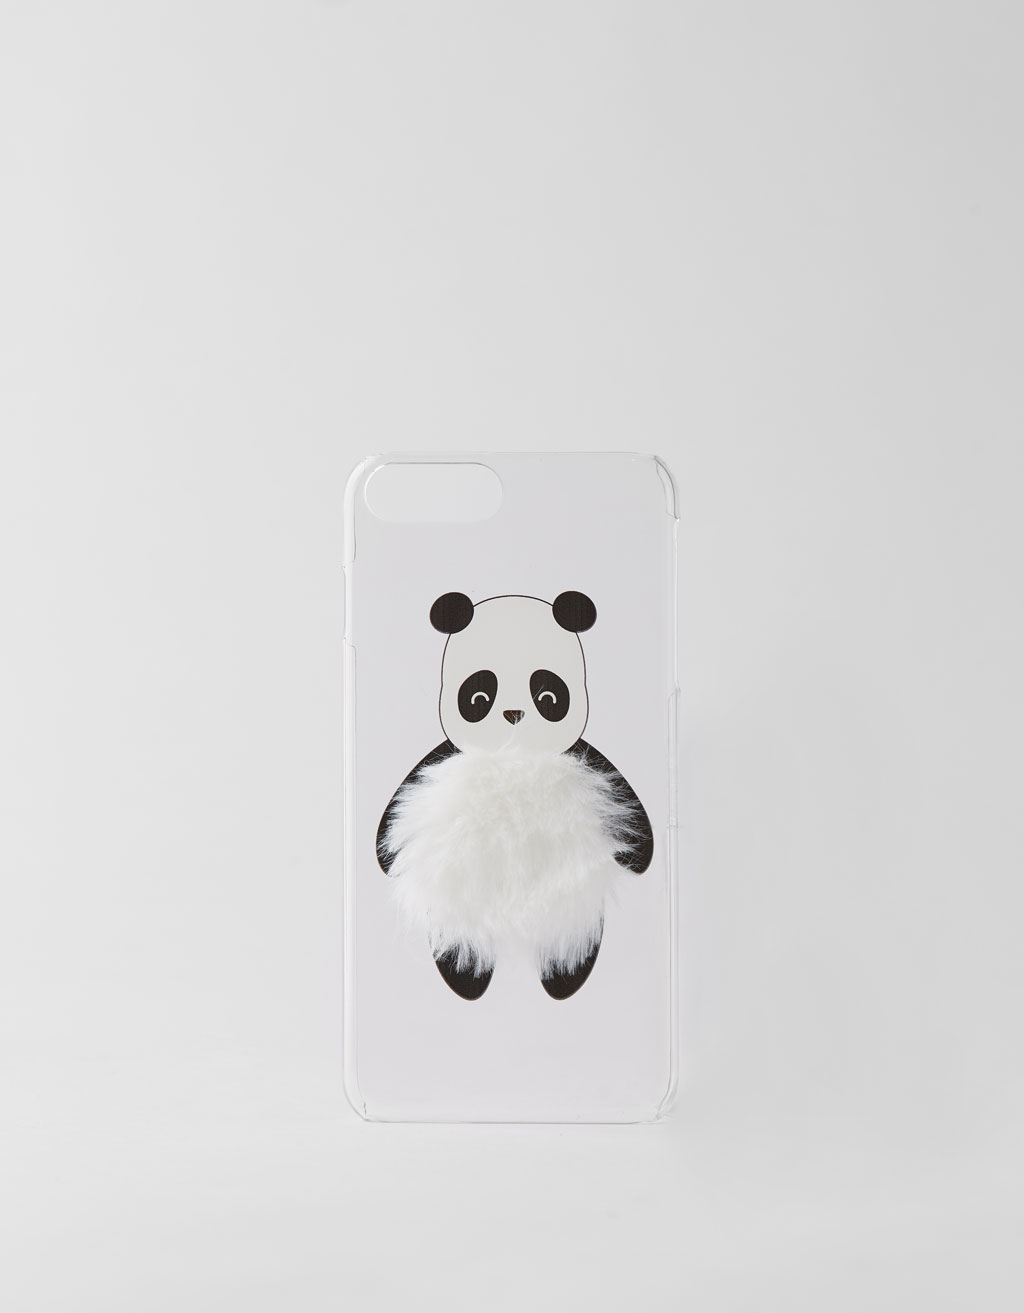 Maska Panda za iPhone 6 plus / 7 plus / 8 plus